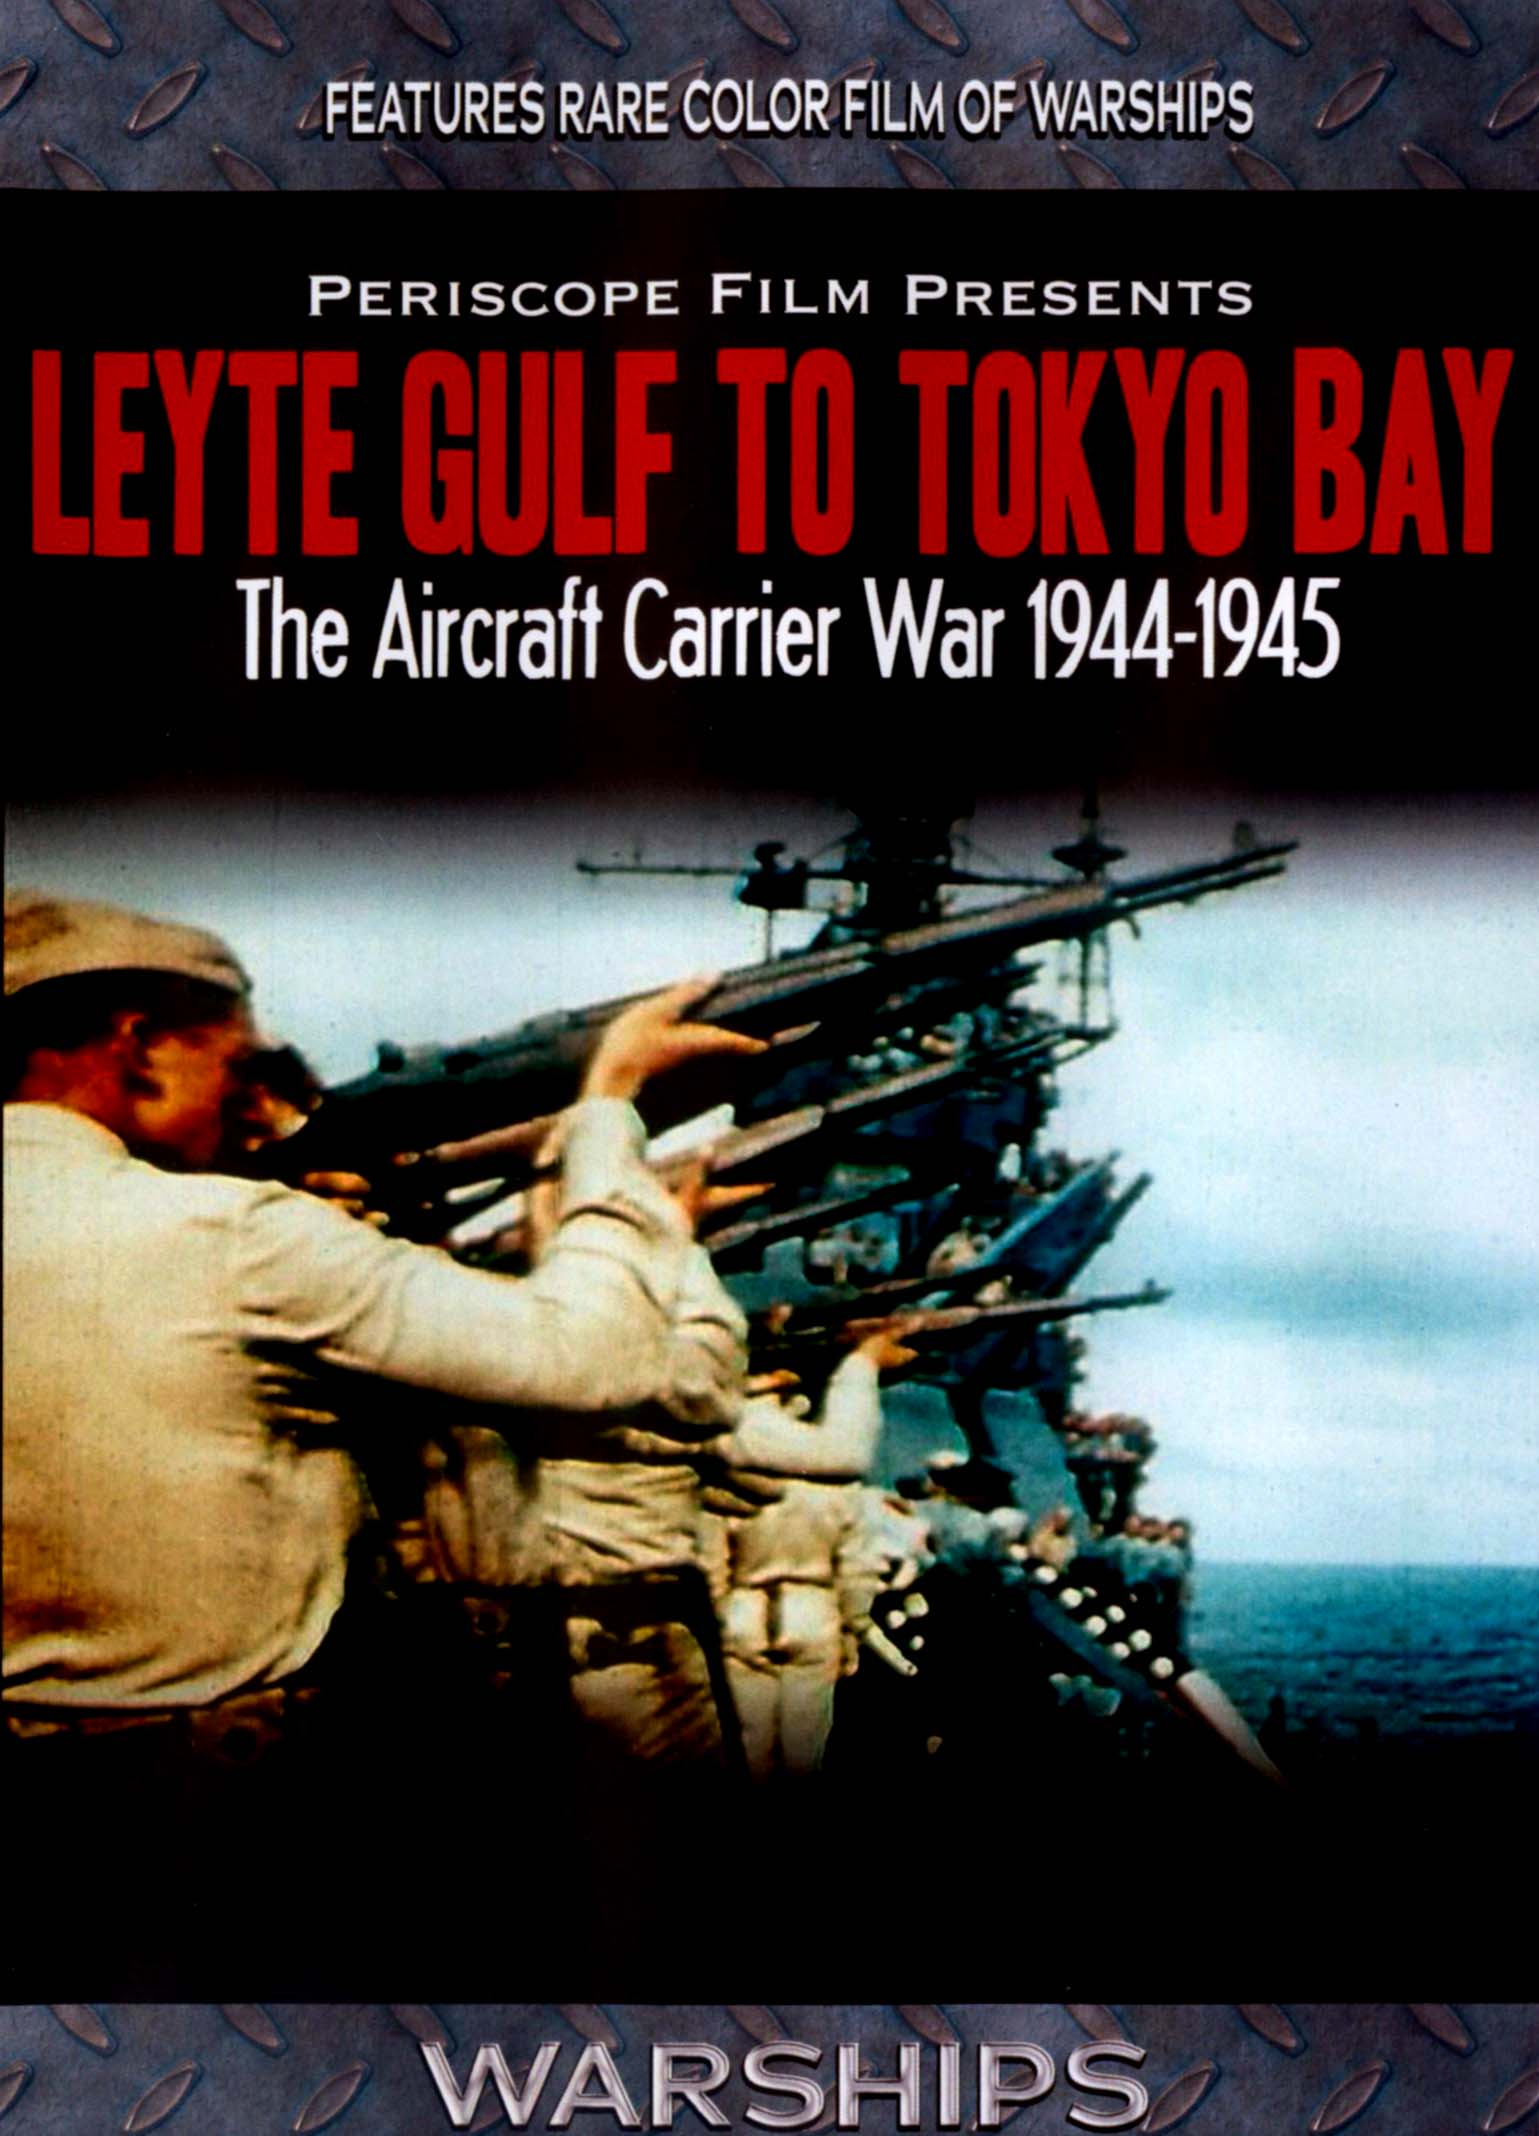 Leyte Gulf to Tokyo Bay: The Aircraft Carrier War: 1944-1945